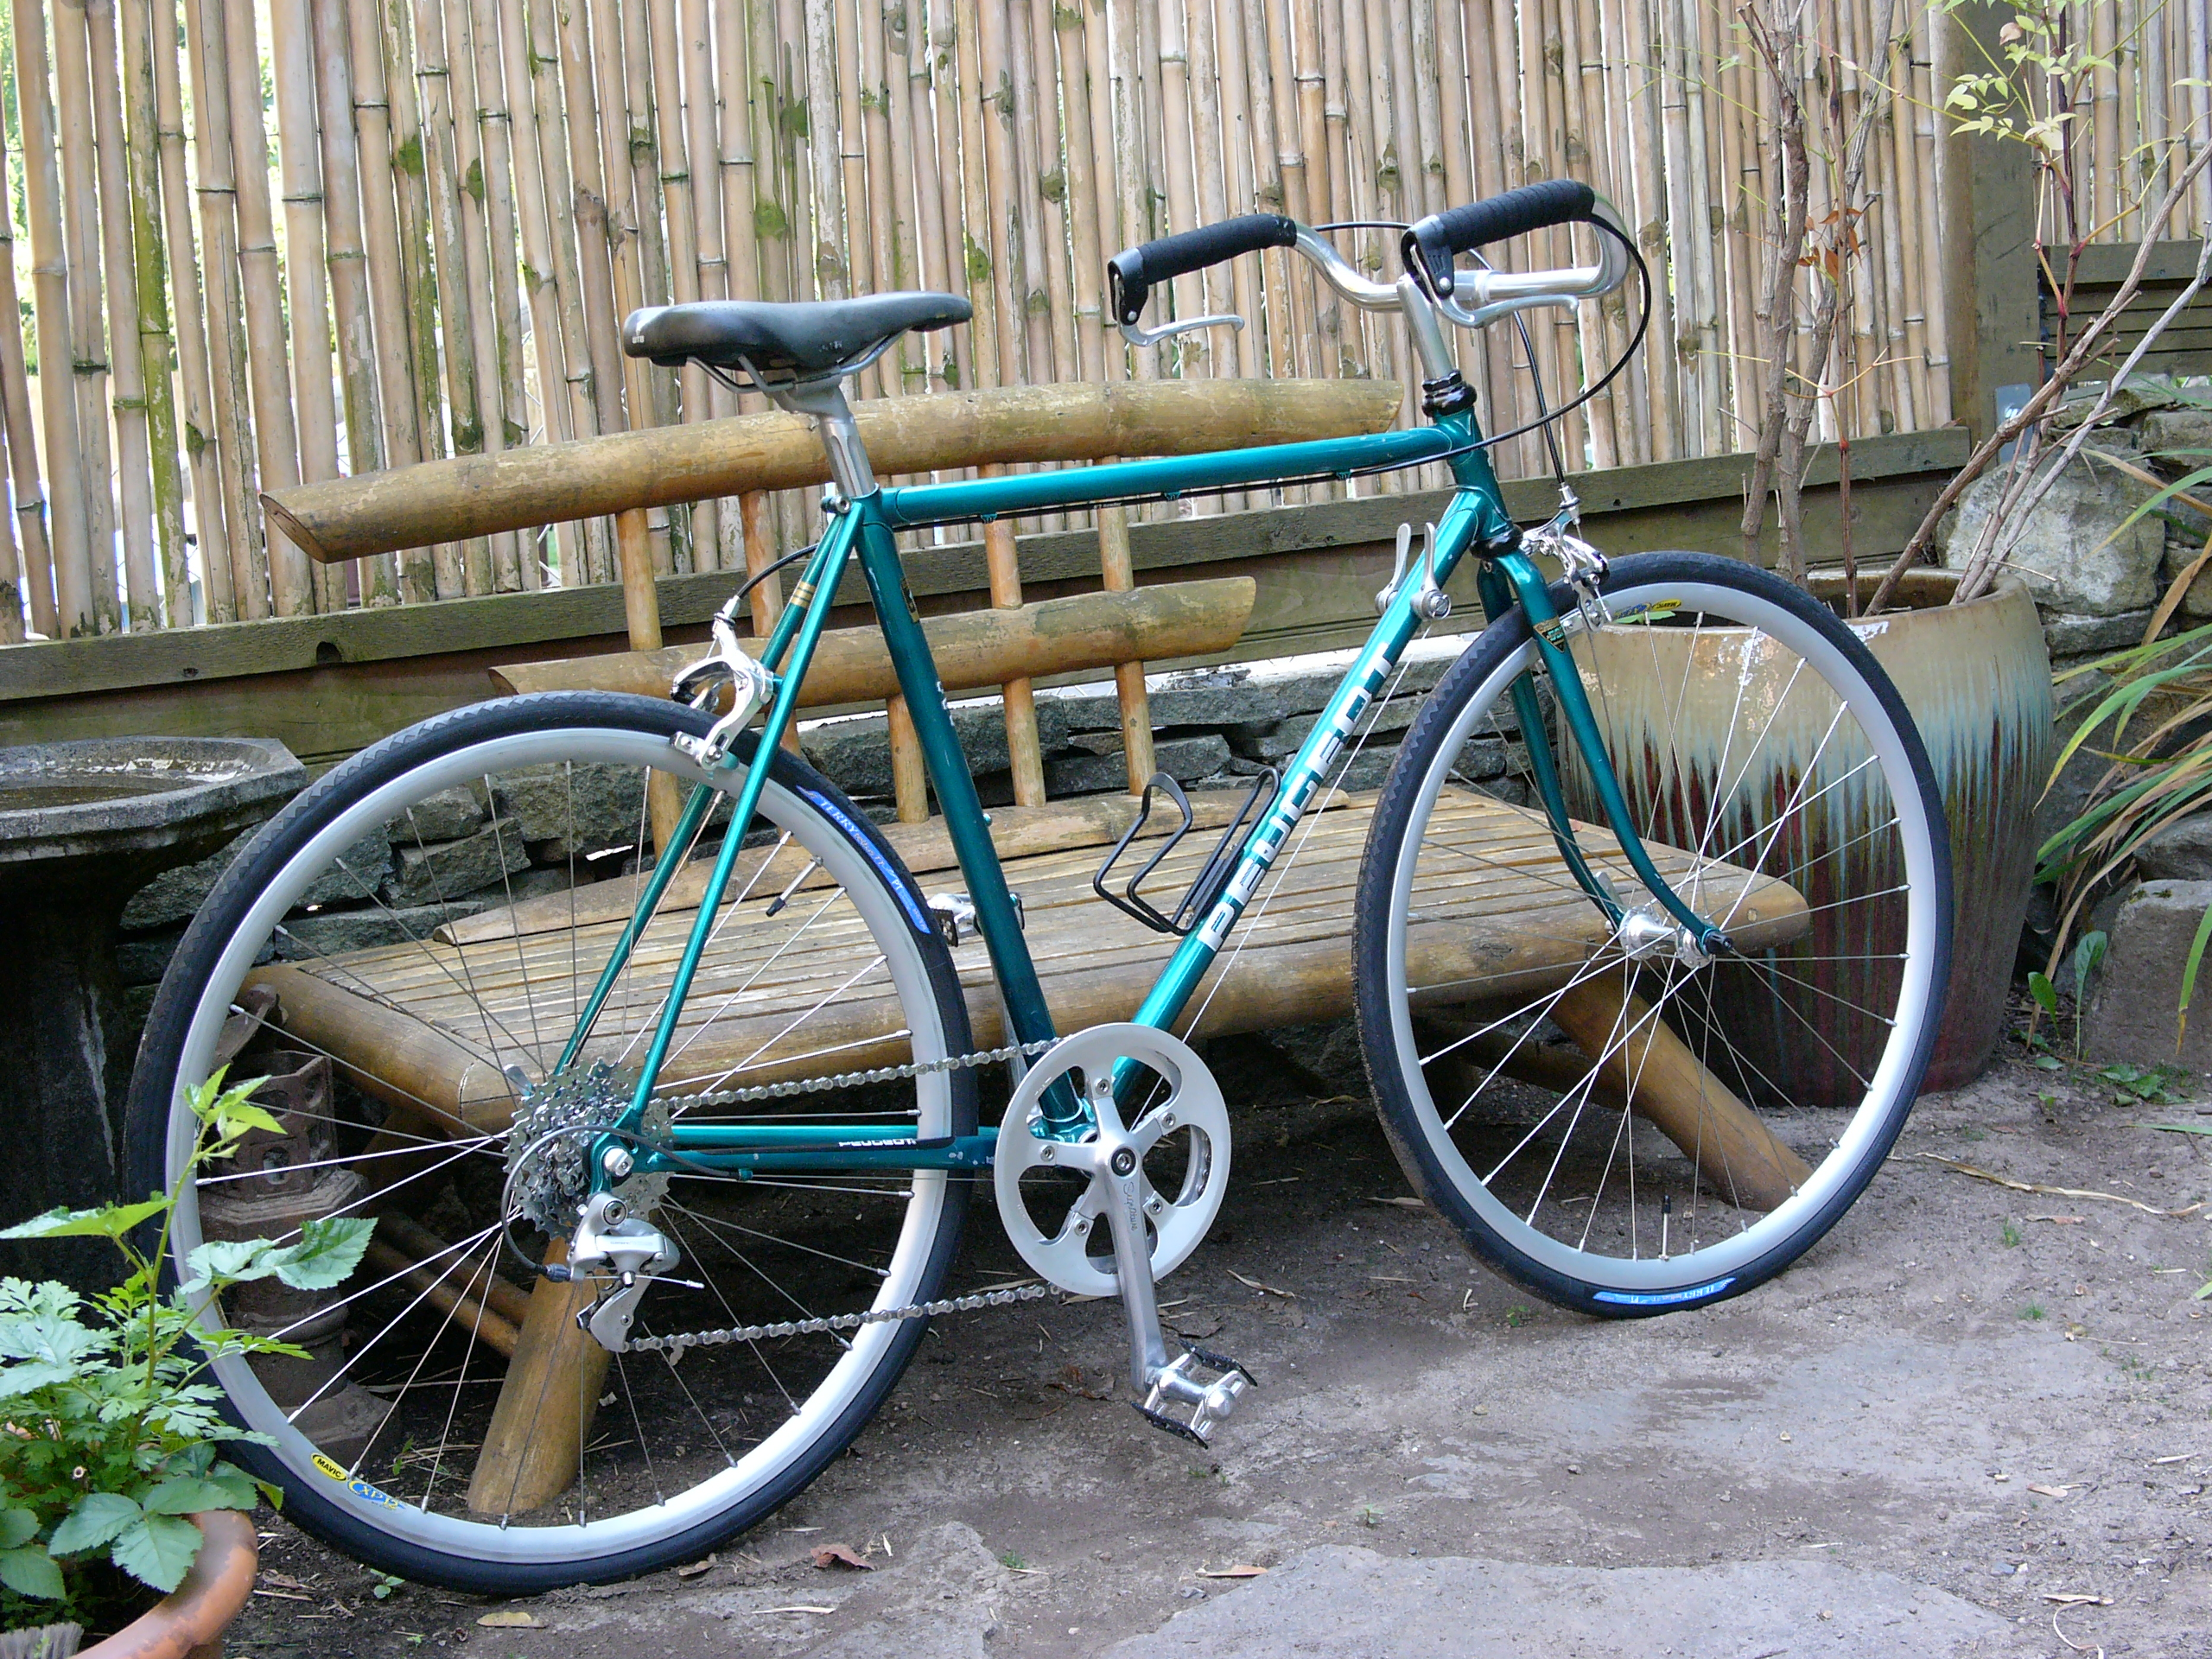 1980's Peugeot 650c Conversion | Restoring Vintage Bicycles from the